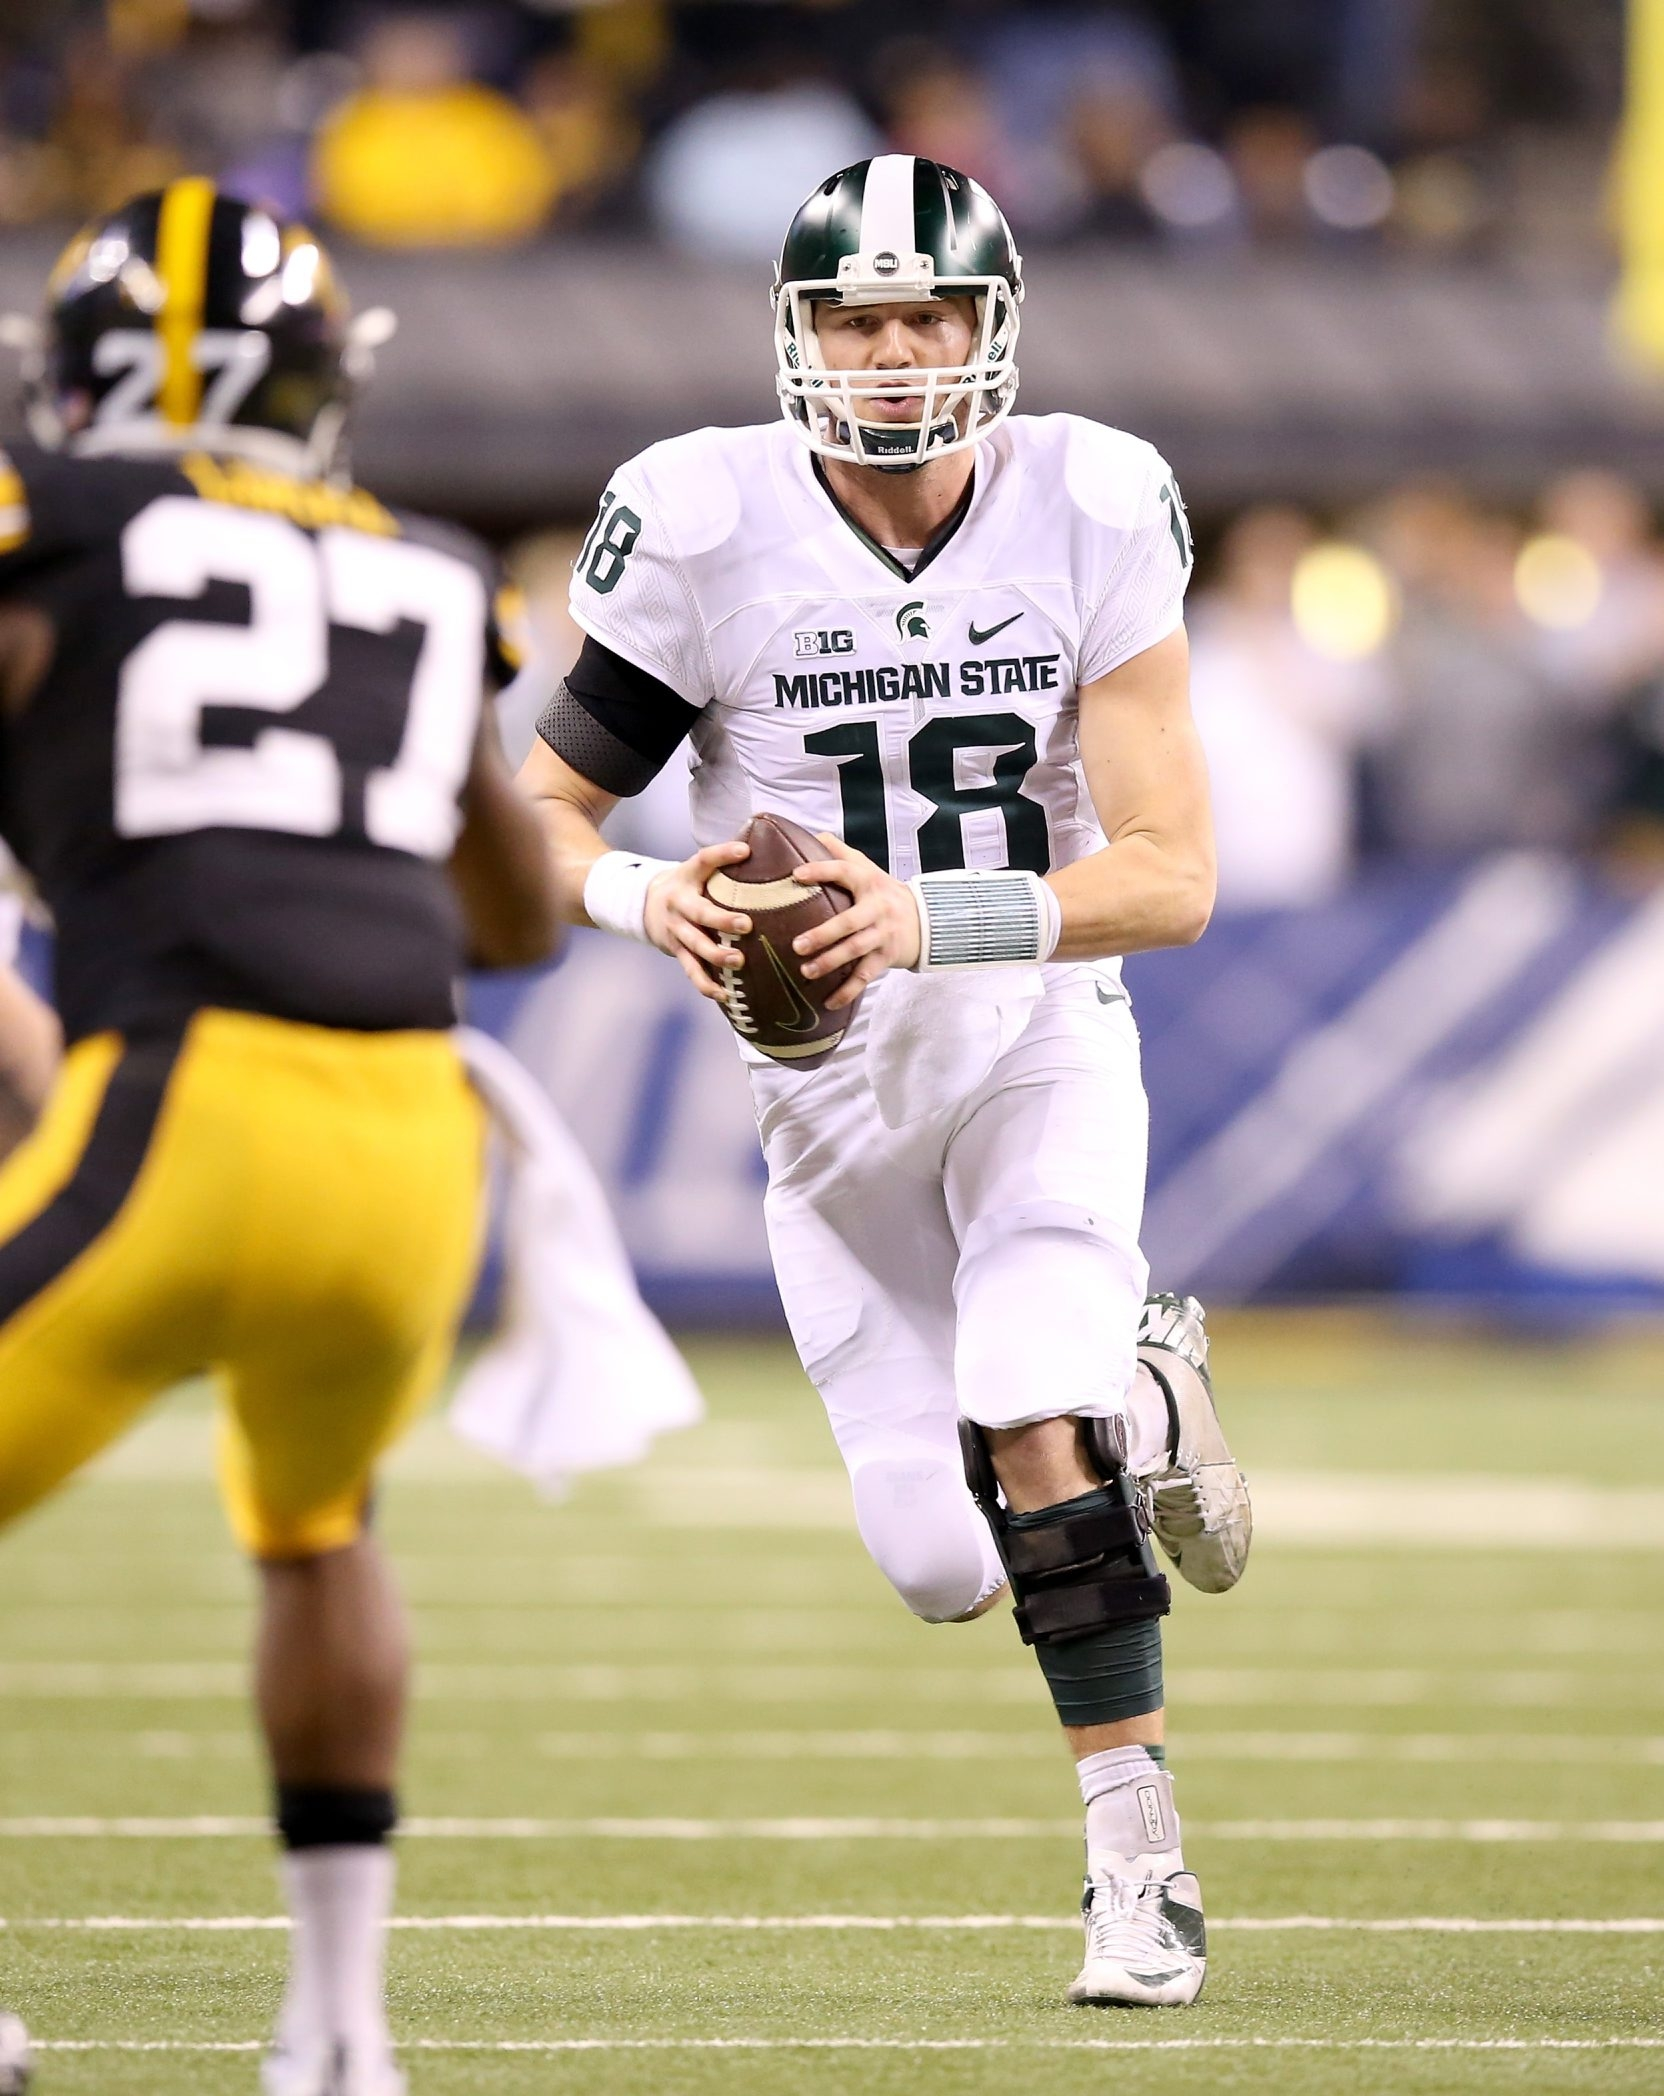 Michigan State quarterback Connor Cook has what it takes to be a leader, says Spartans co-offensive coordinator Dave Warner.